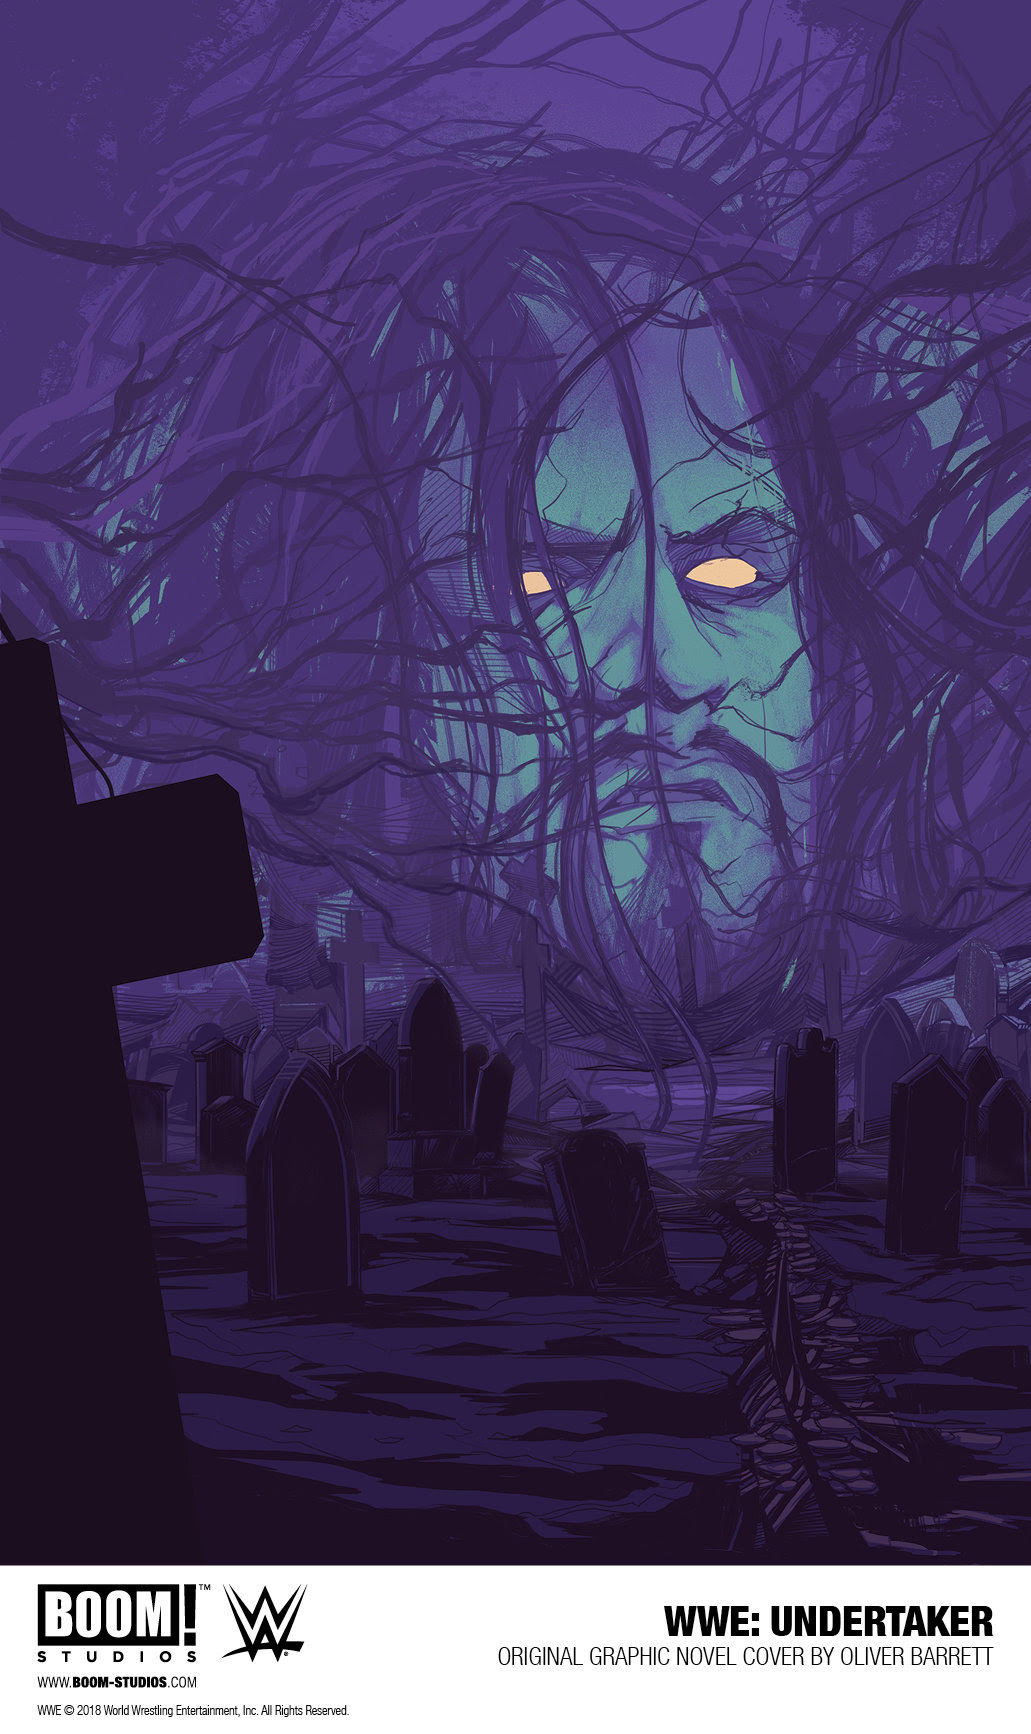 BOOM! Studios is working with WWE to tell the untold story of The Undertaker